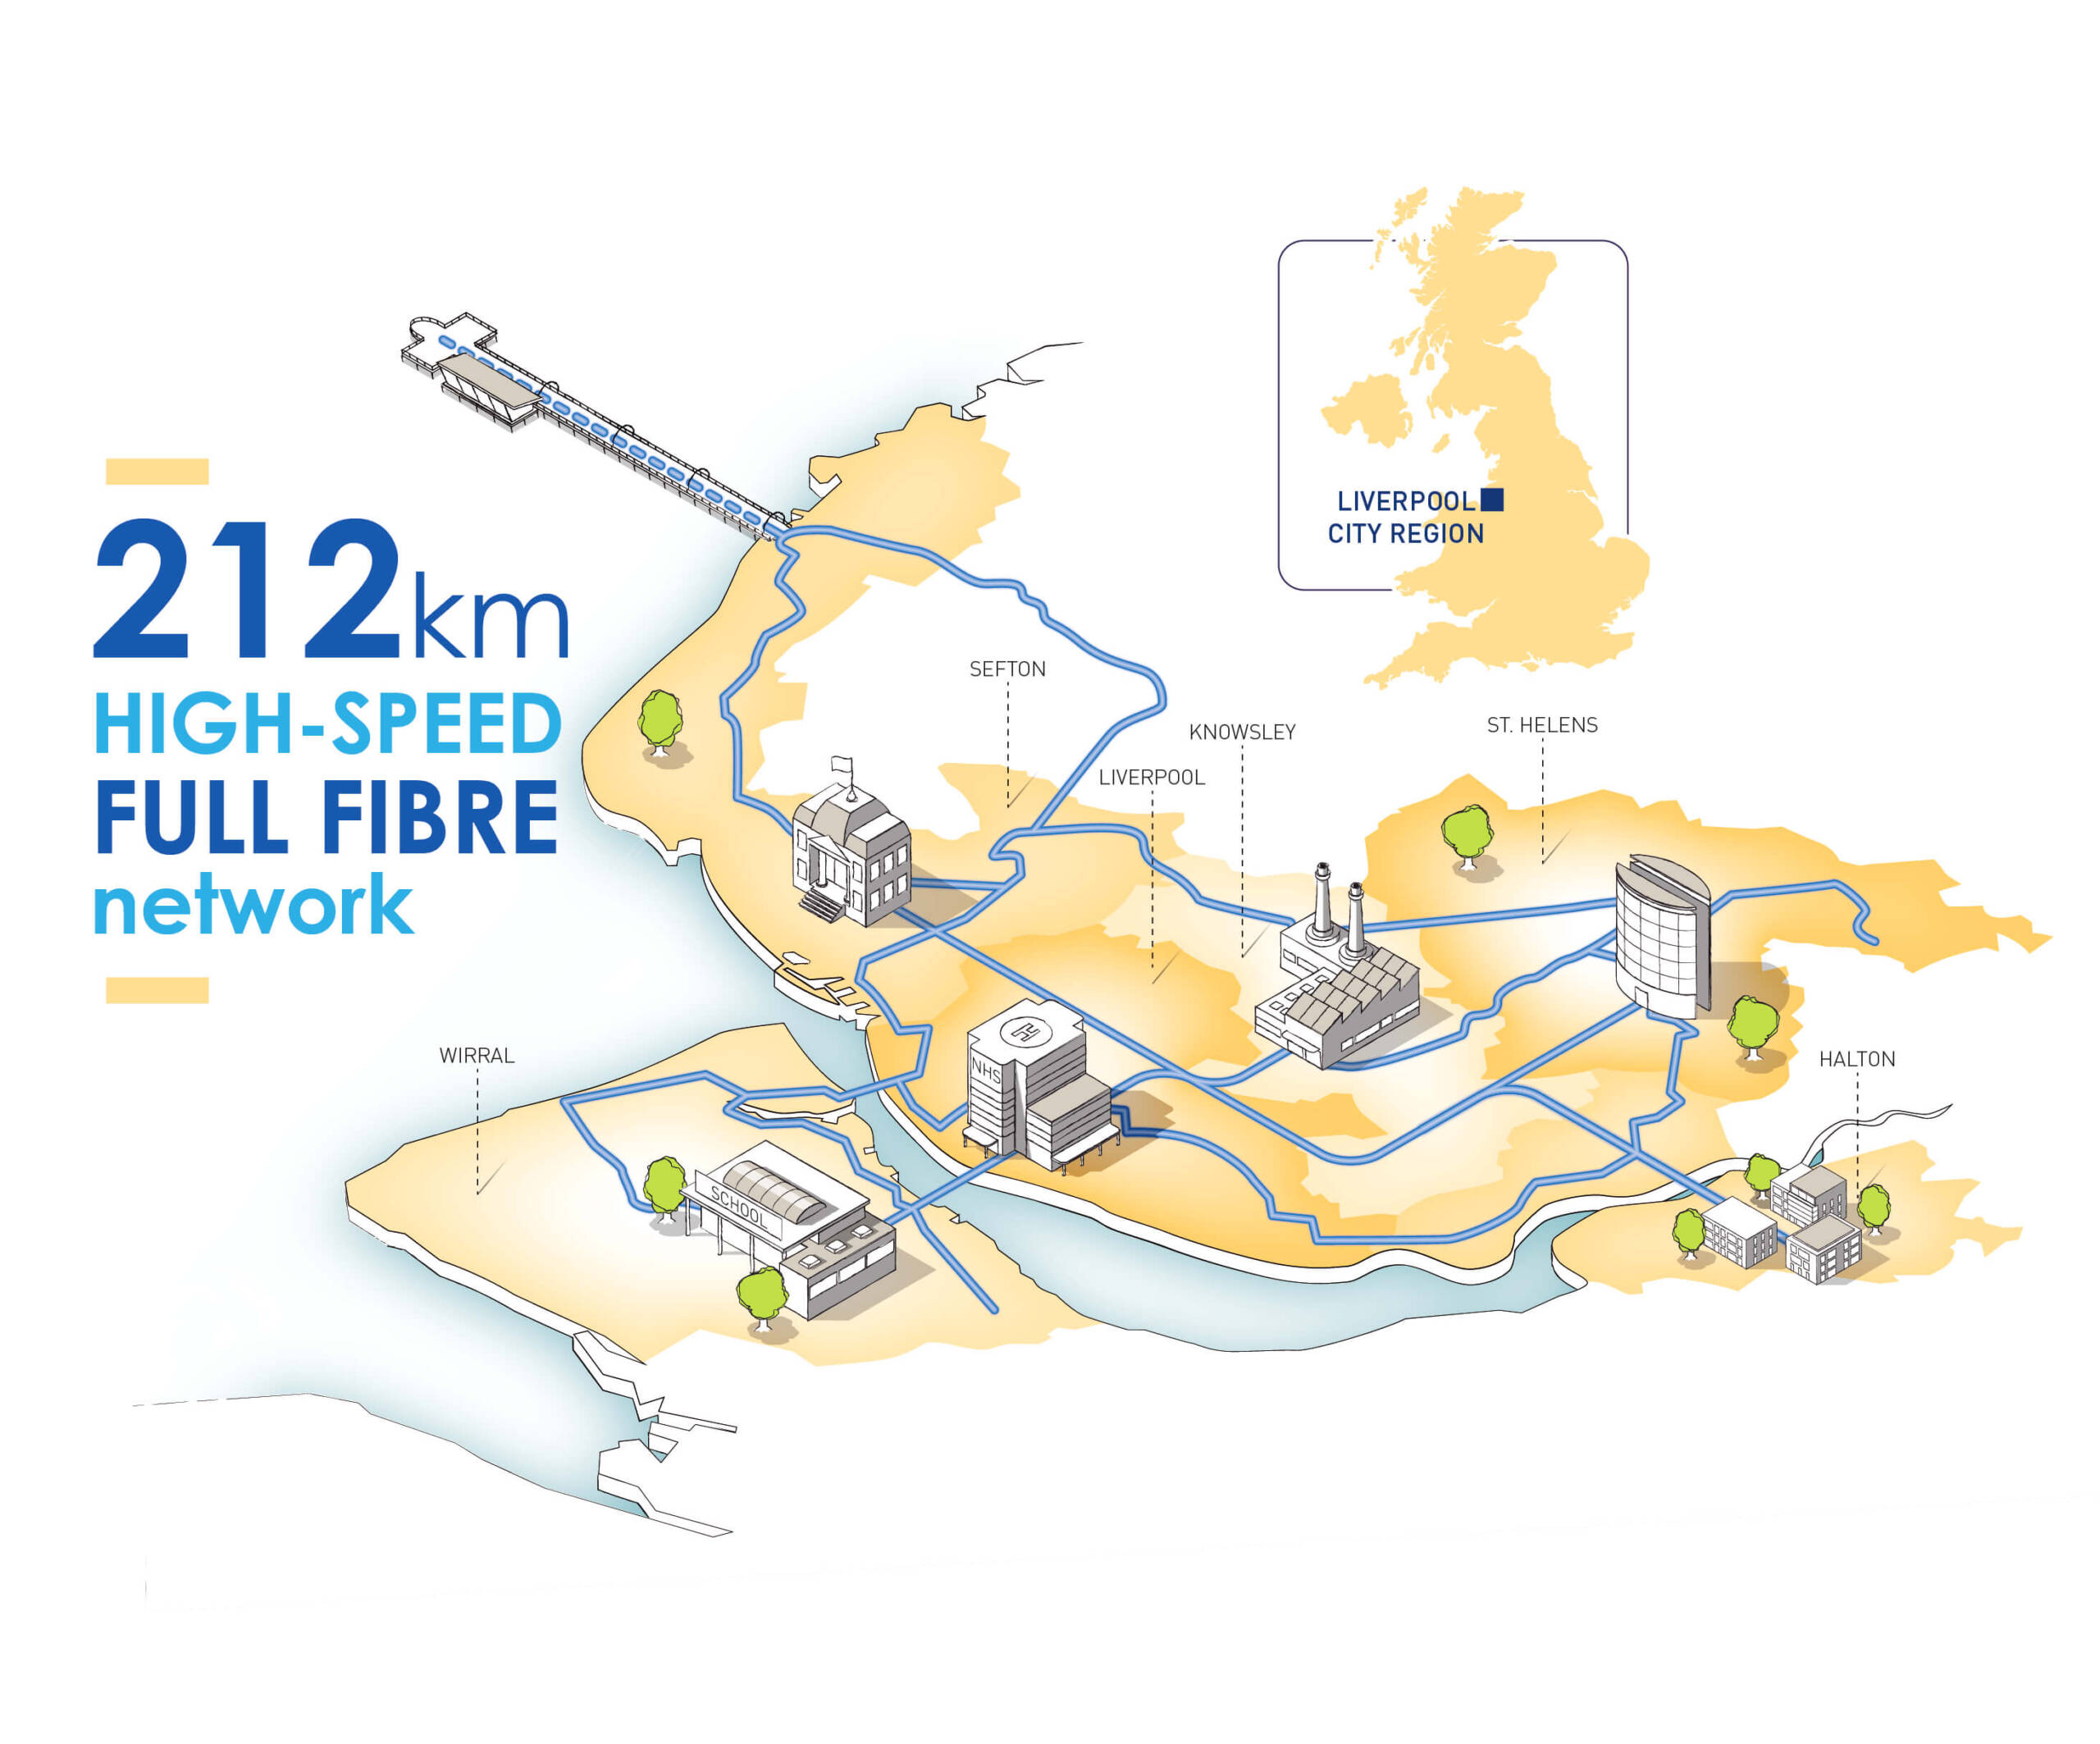 A map that illustrates the area in which the 212km of high-speed fibre will be installed